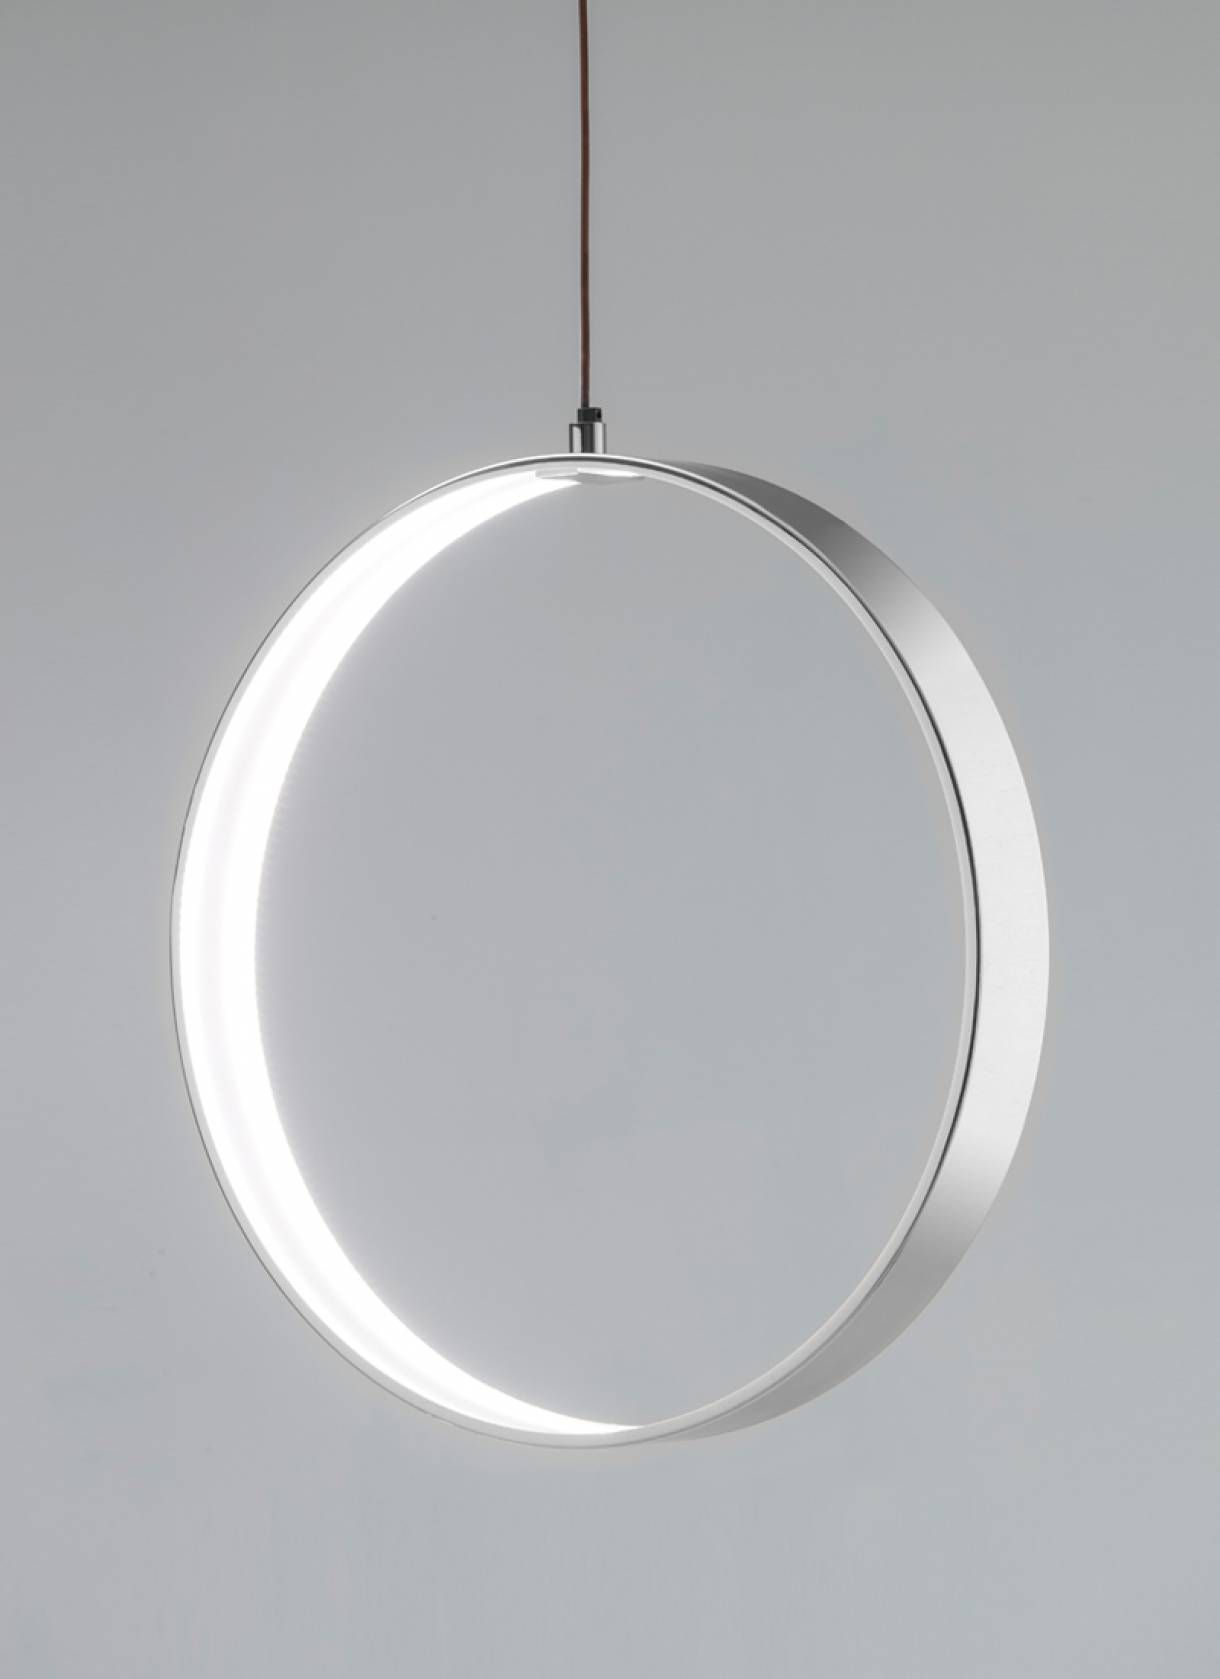 Ecliss - Suspension lamp